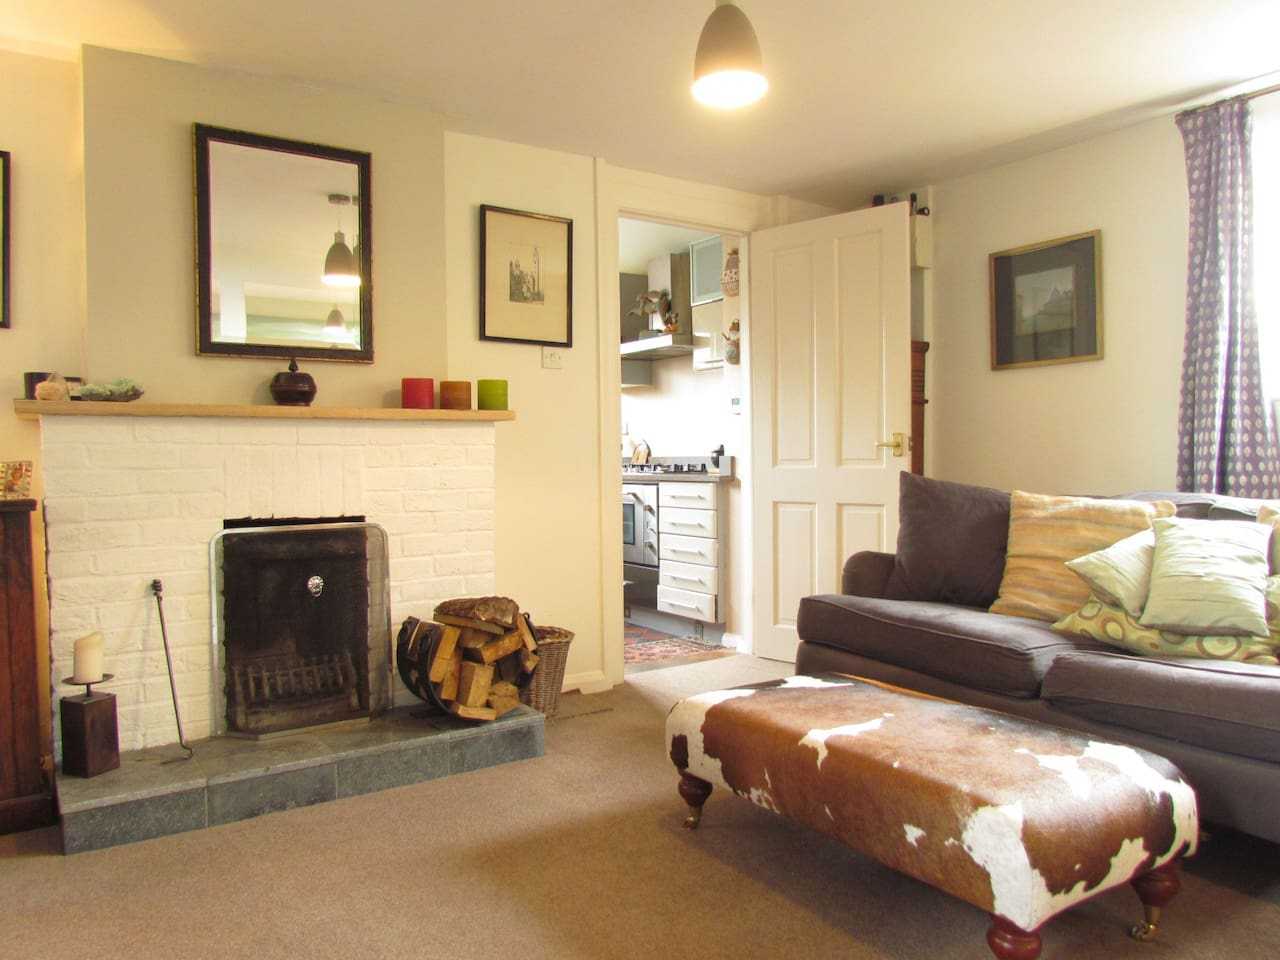 Open fire for those cosy nights in. Door leading in from the kitchen.